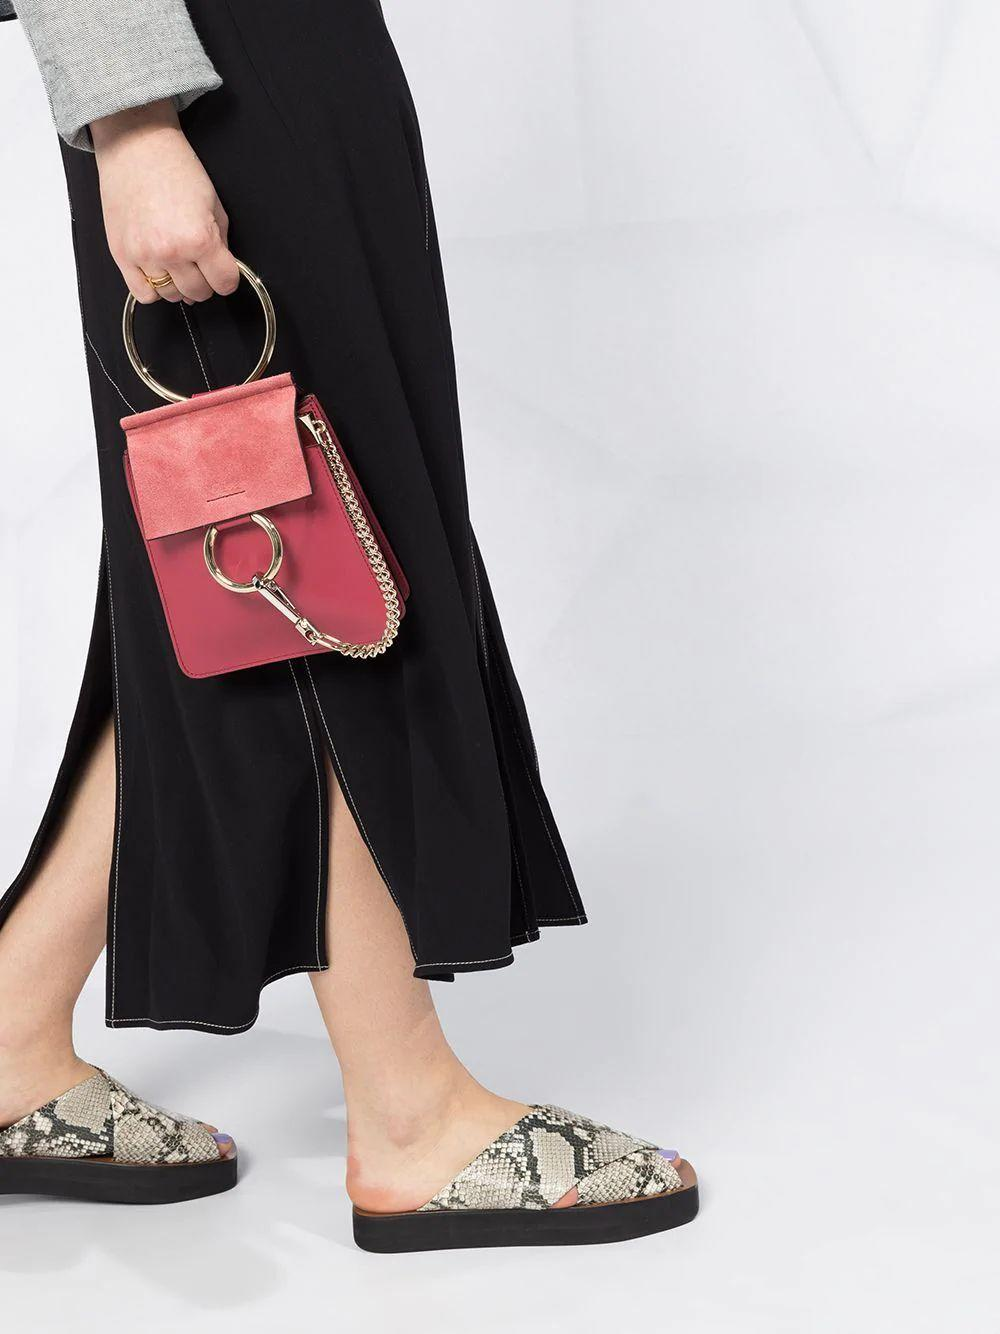 Chloé Faye Smooth and Suede Calfskin Bracelet Bag | Tootsies